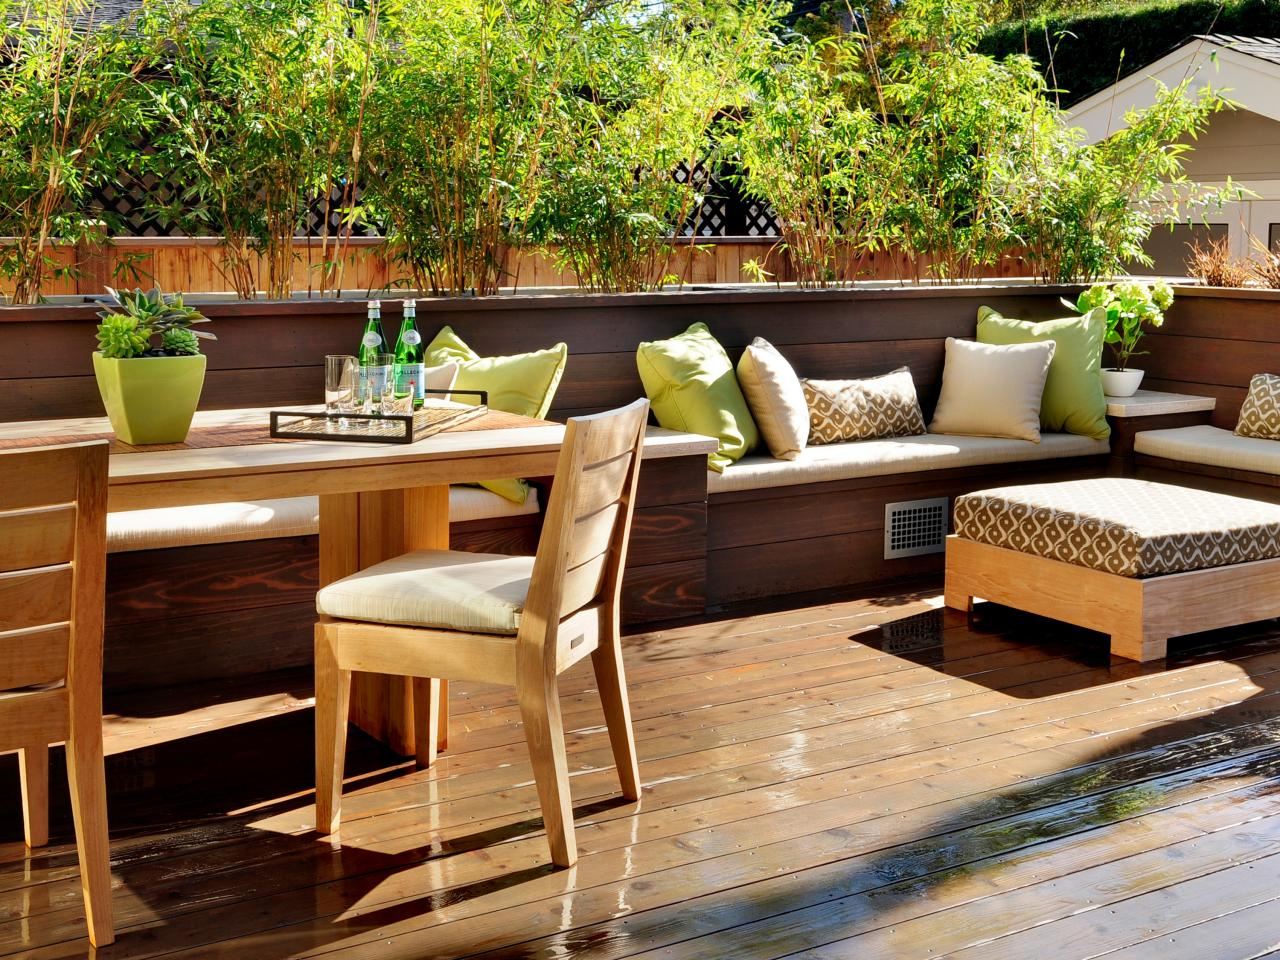 Deck design ideas outdoor spaces patio ideas decks for Outside balcony furniture